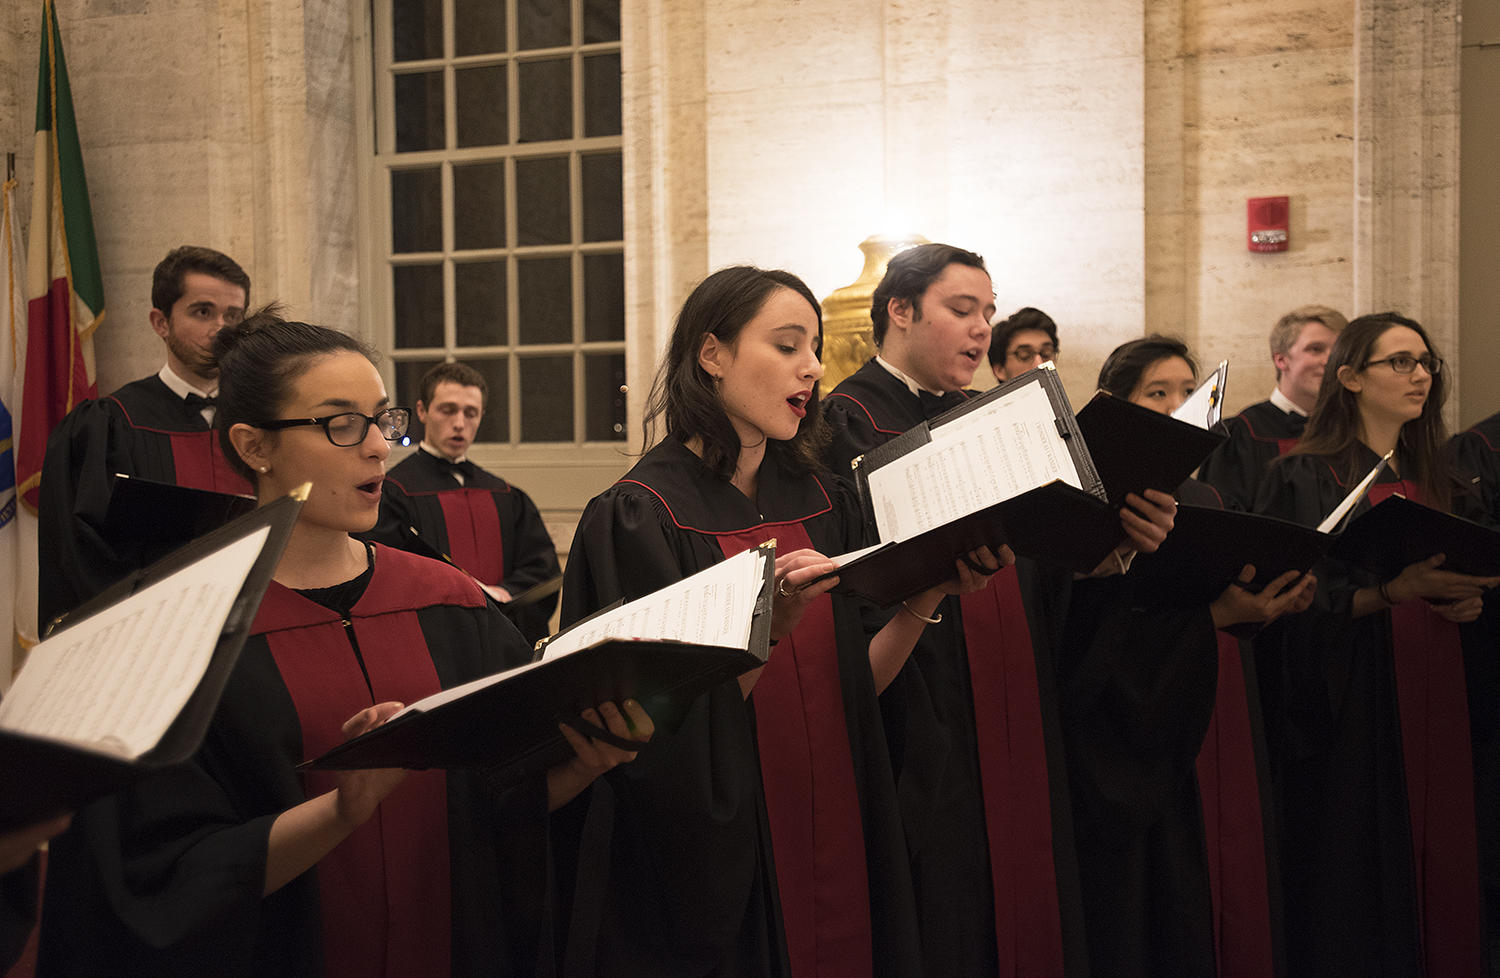 Cara Jacobson '18 (second from the left), a choral fellow and choir secretary, sings in the Memorial room of Memorial Church.